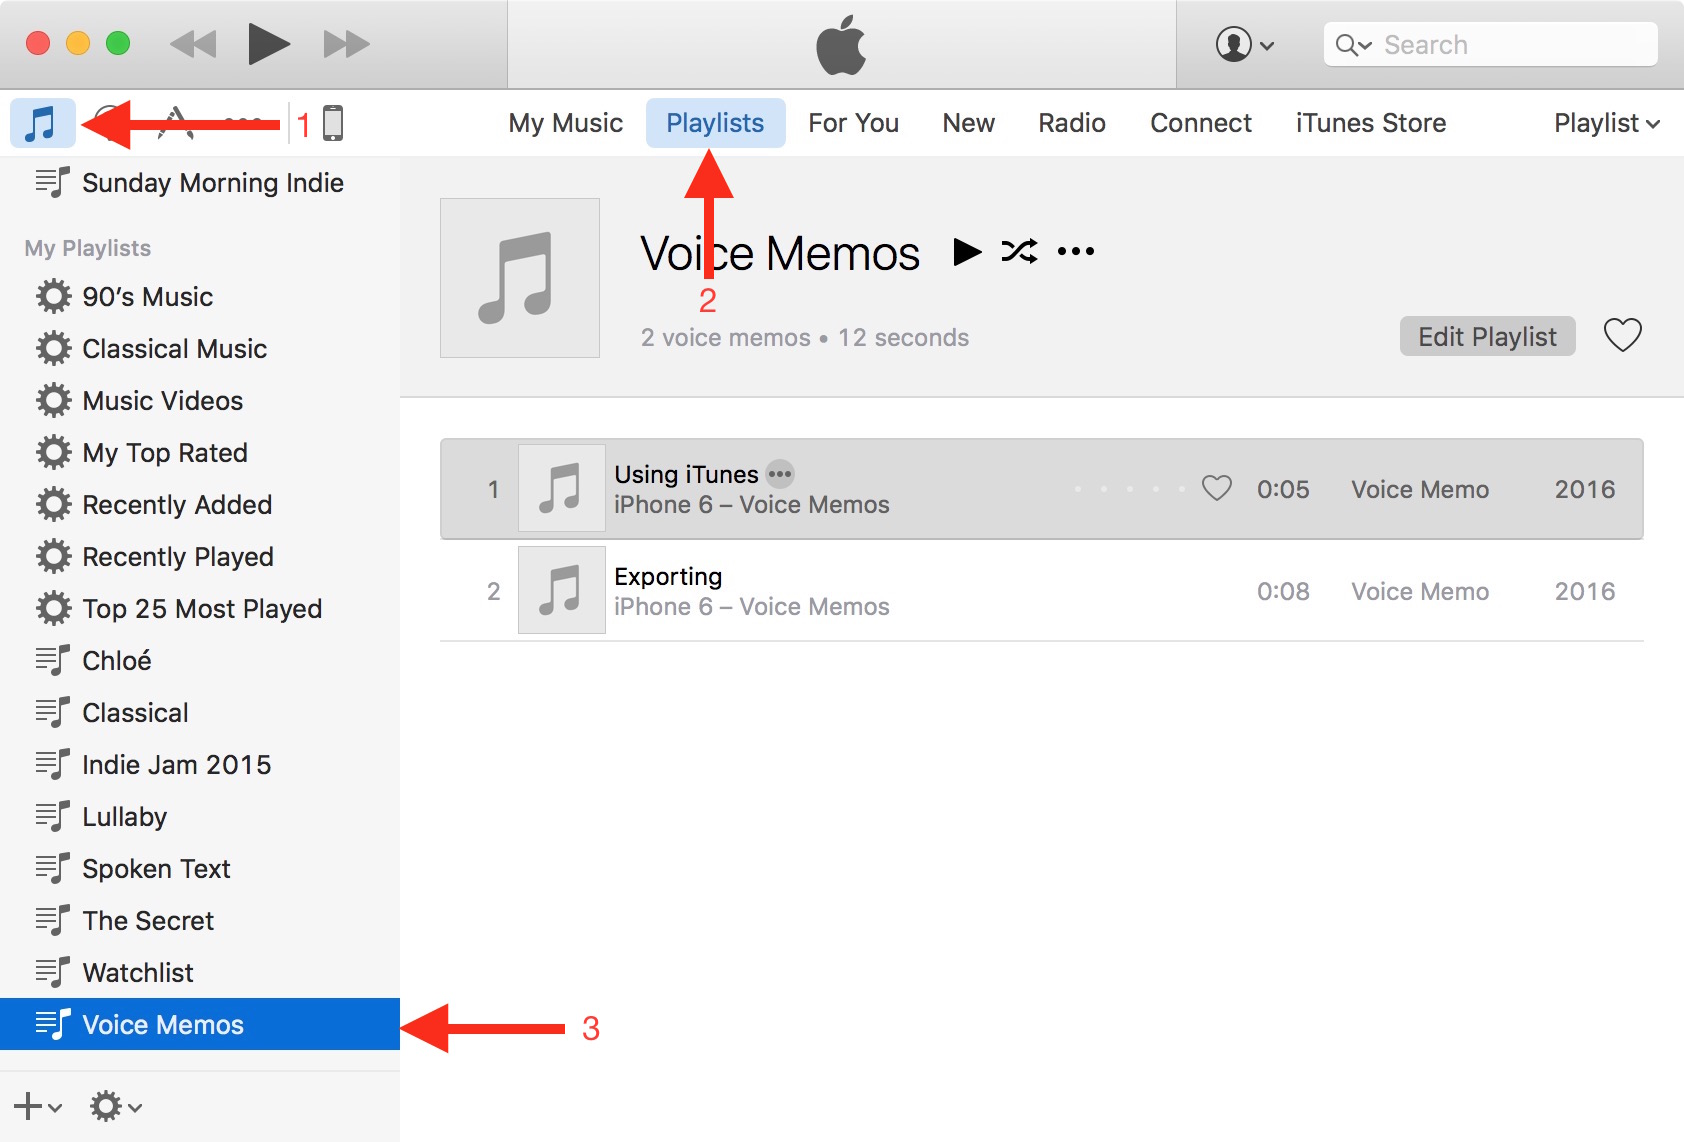 How to transfer photos from iphone to windows via itunes